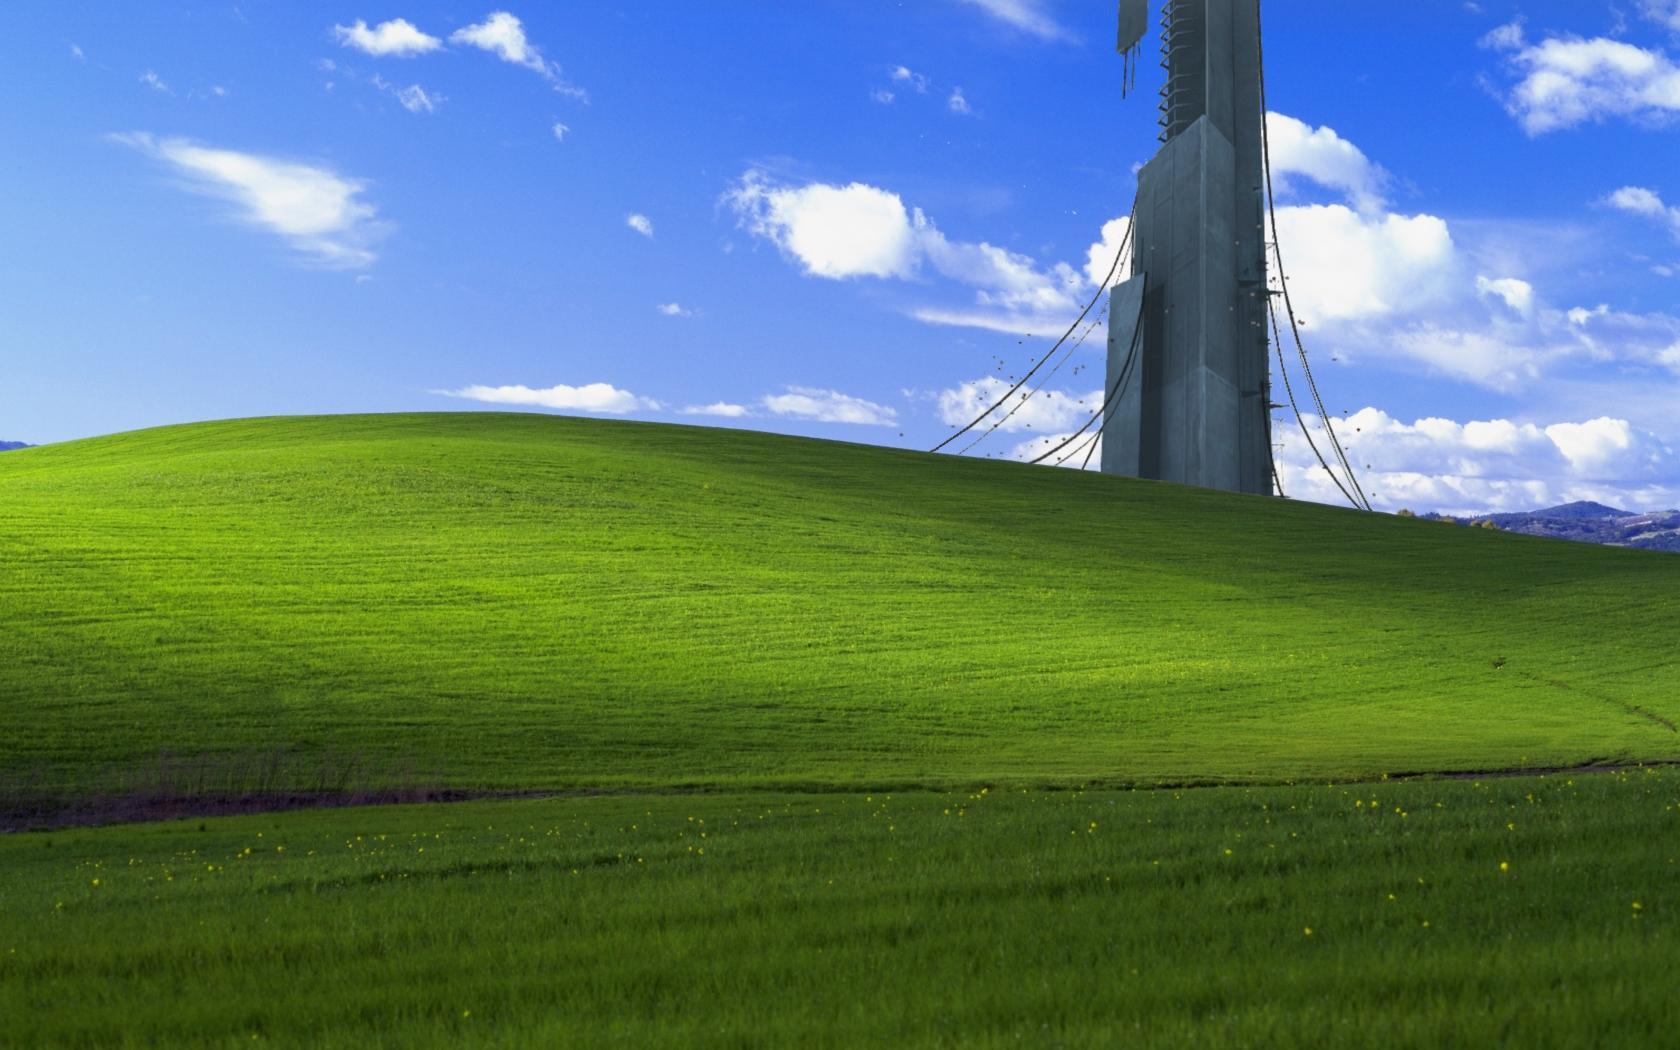 half-life 2 | windows xp bliss wallpaper | know your meme